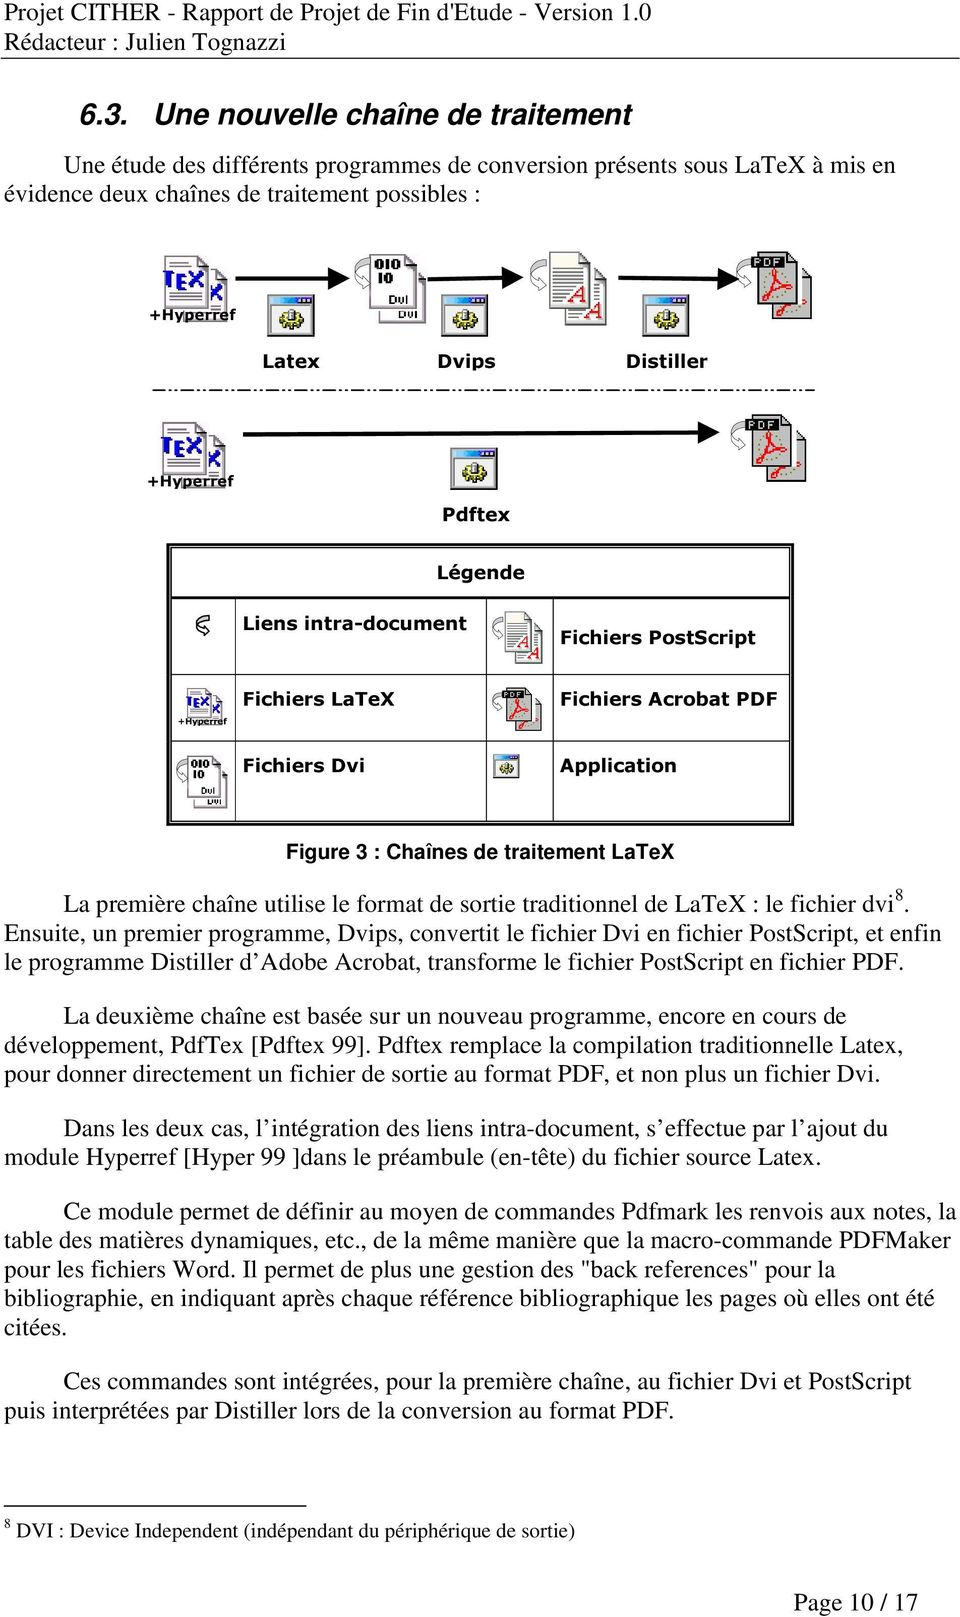 le format de sortie traditionnel de LaTeX : le fichier dvi 8.